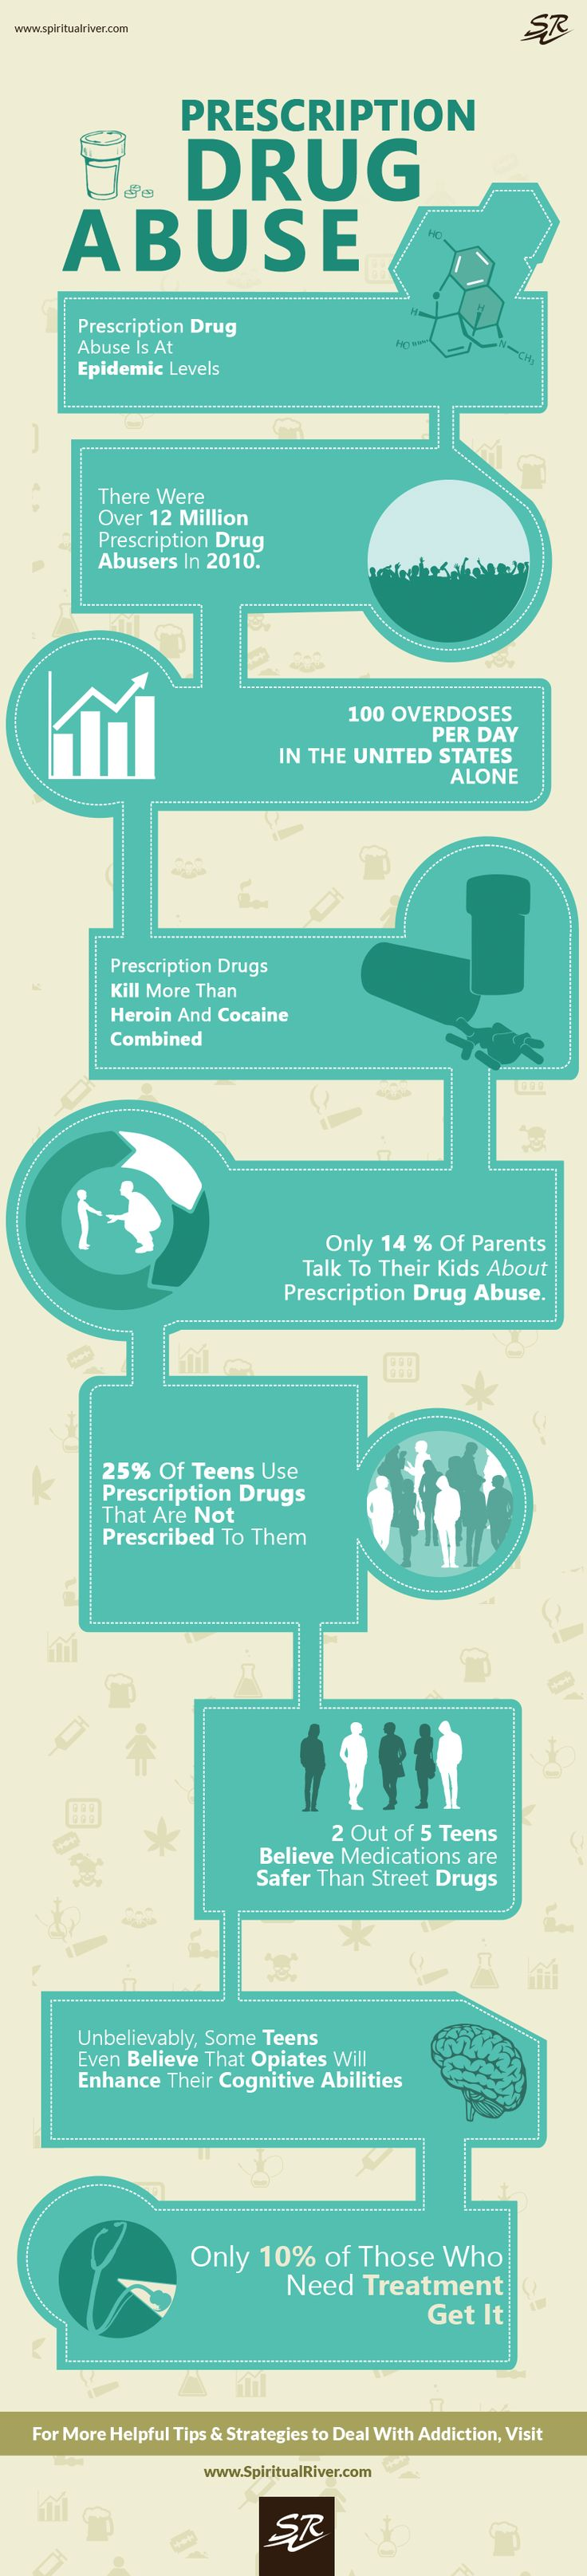 9 best Addiction Myths & Facts images on Pinterest | Drugs abuse ...